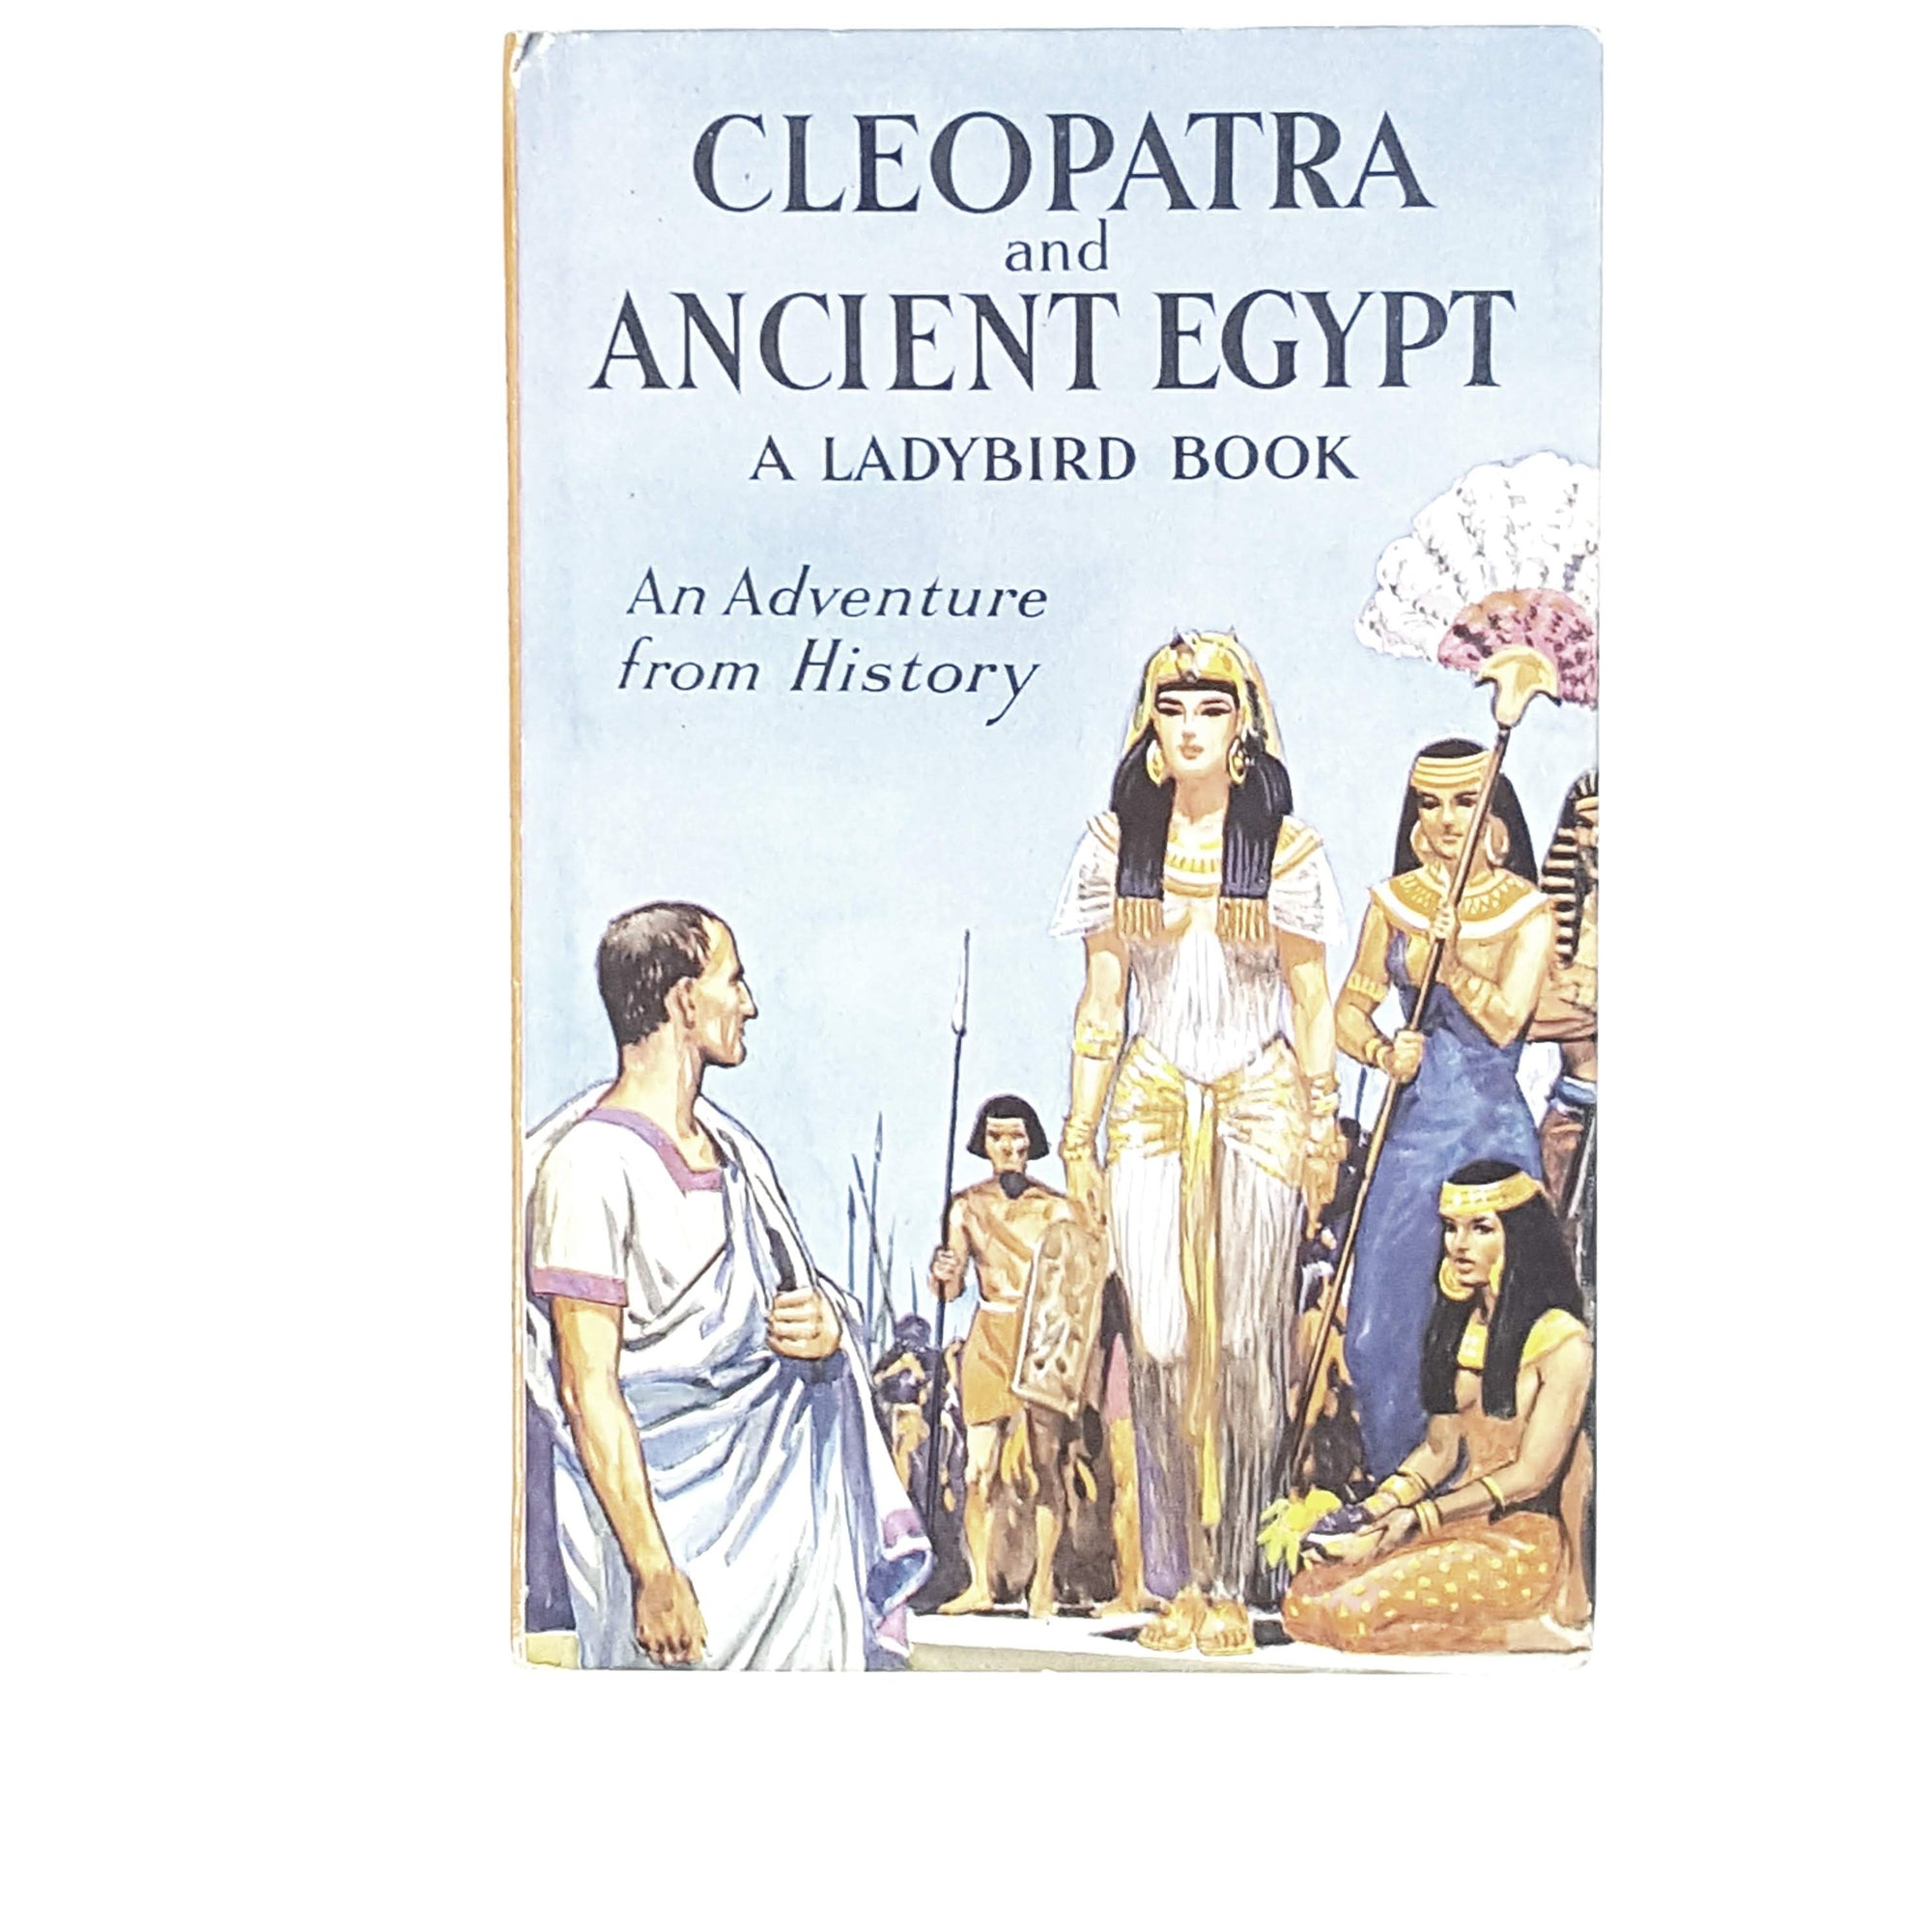 ladybird-history-cleopatra-and-ancient-egypt-1966-kindergarten-books-country-house-library